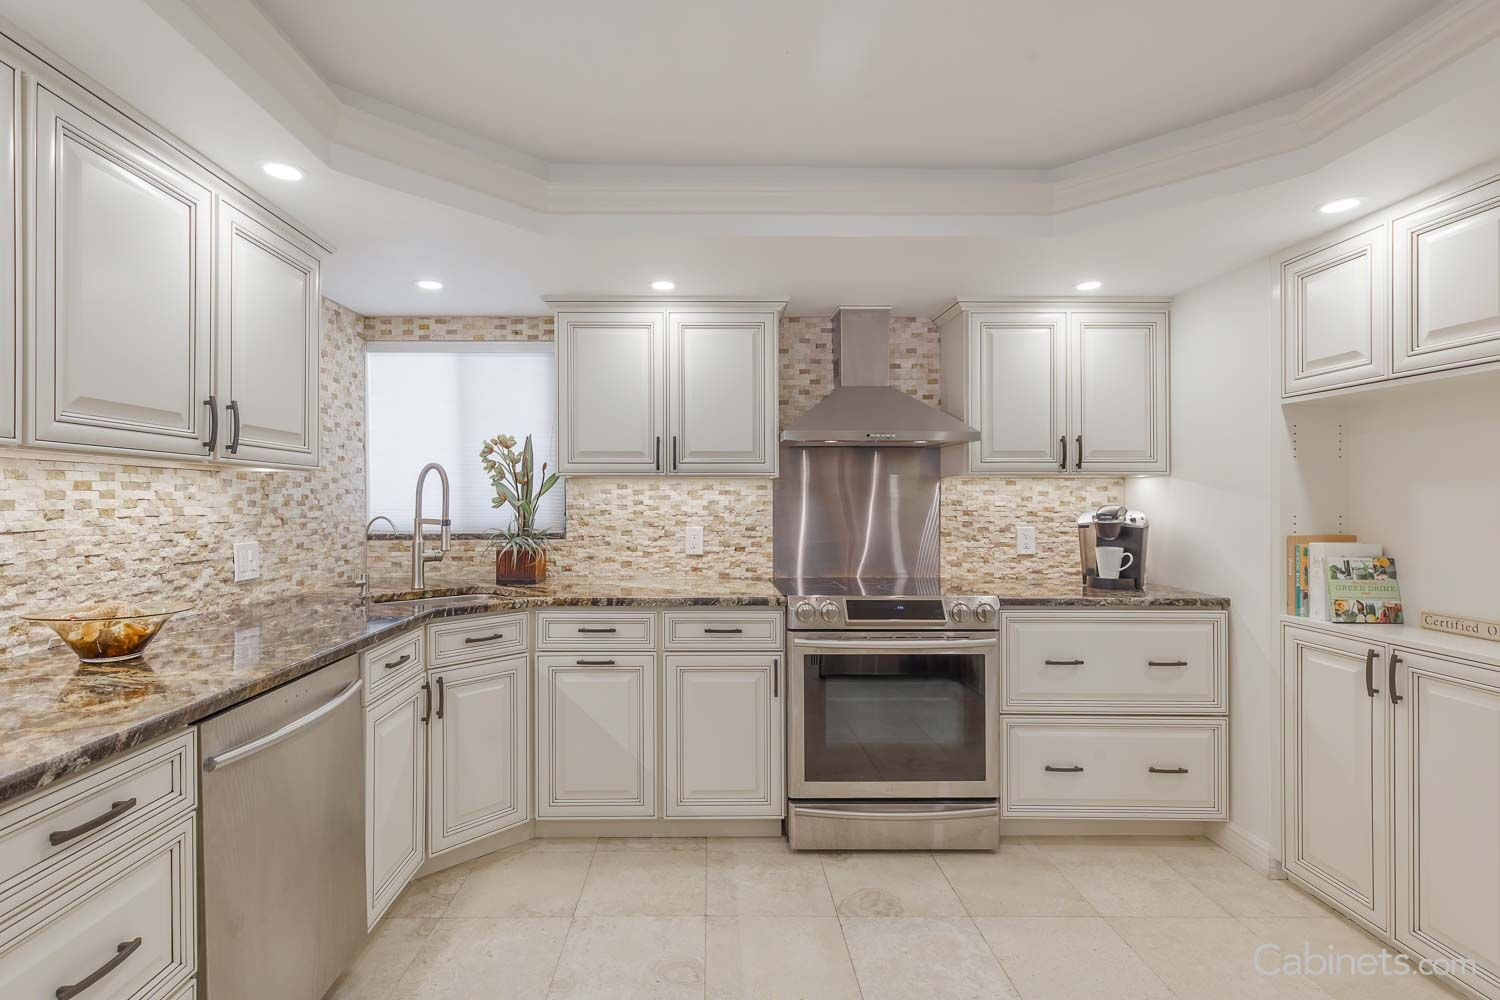 Springfield Antique White Chocolate Glaze Do Not Really Like This Finish O Affordable Kitchen Cabinets Kitchen Cabinets And Countertops Antique White Kitchen